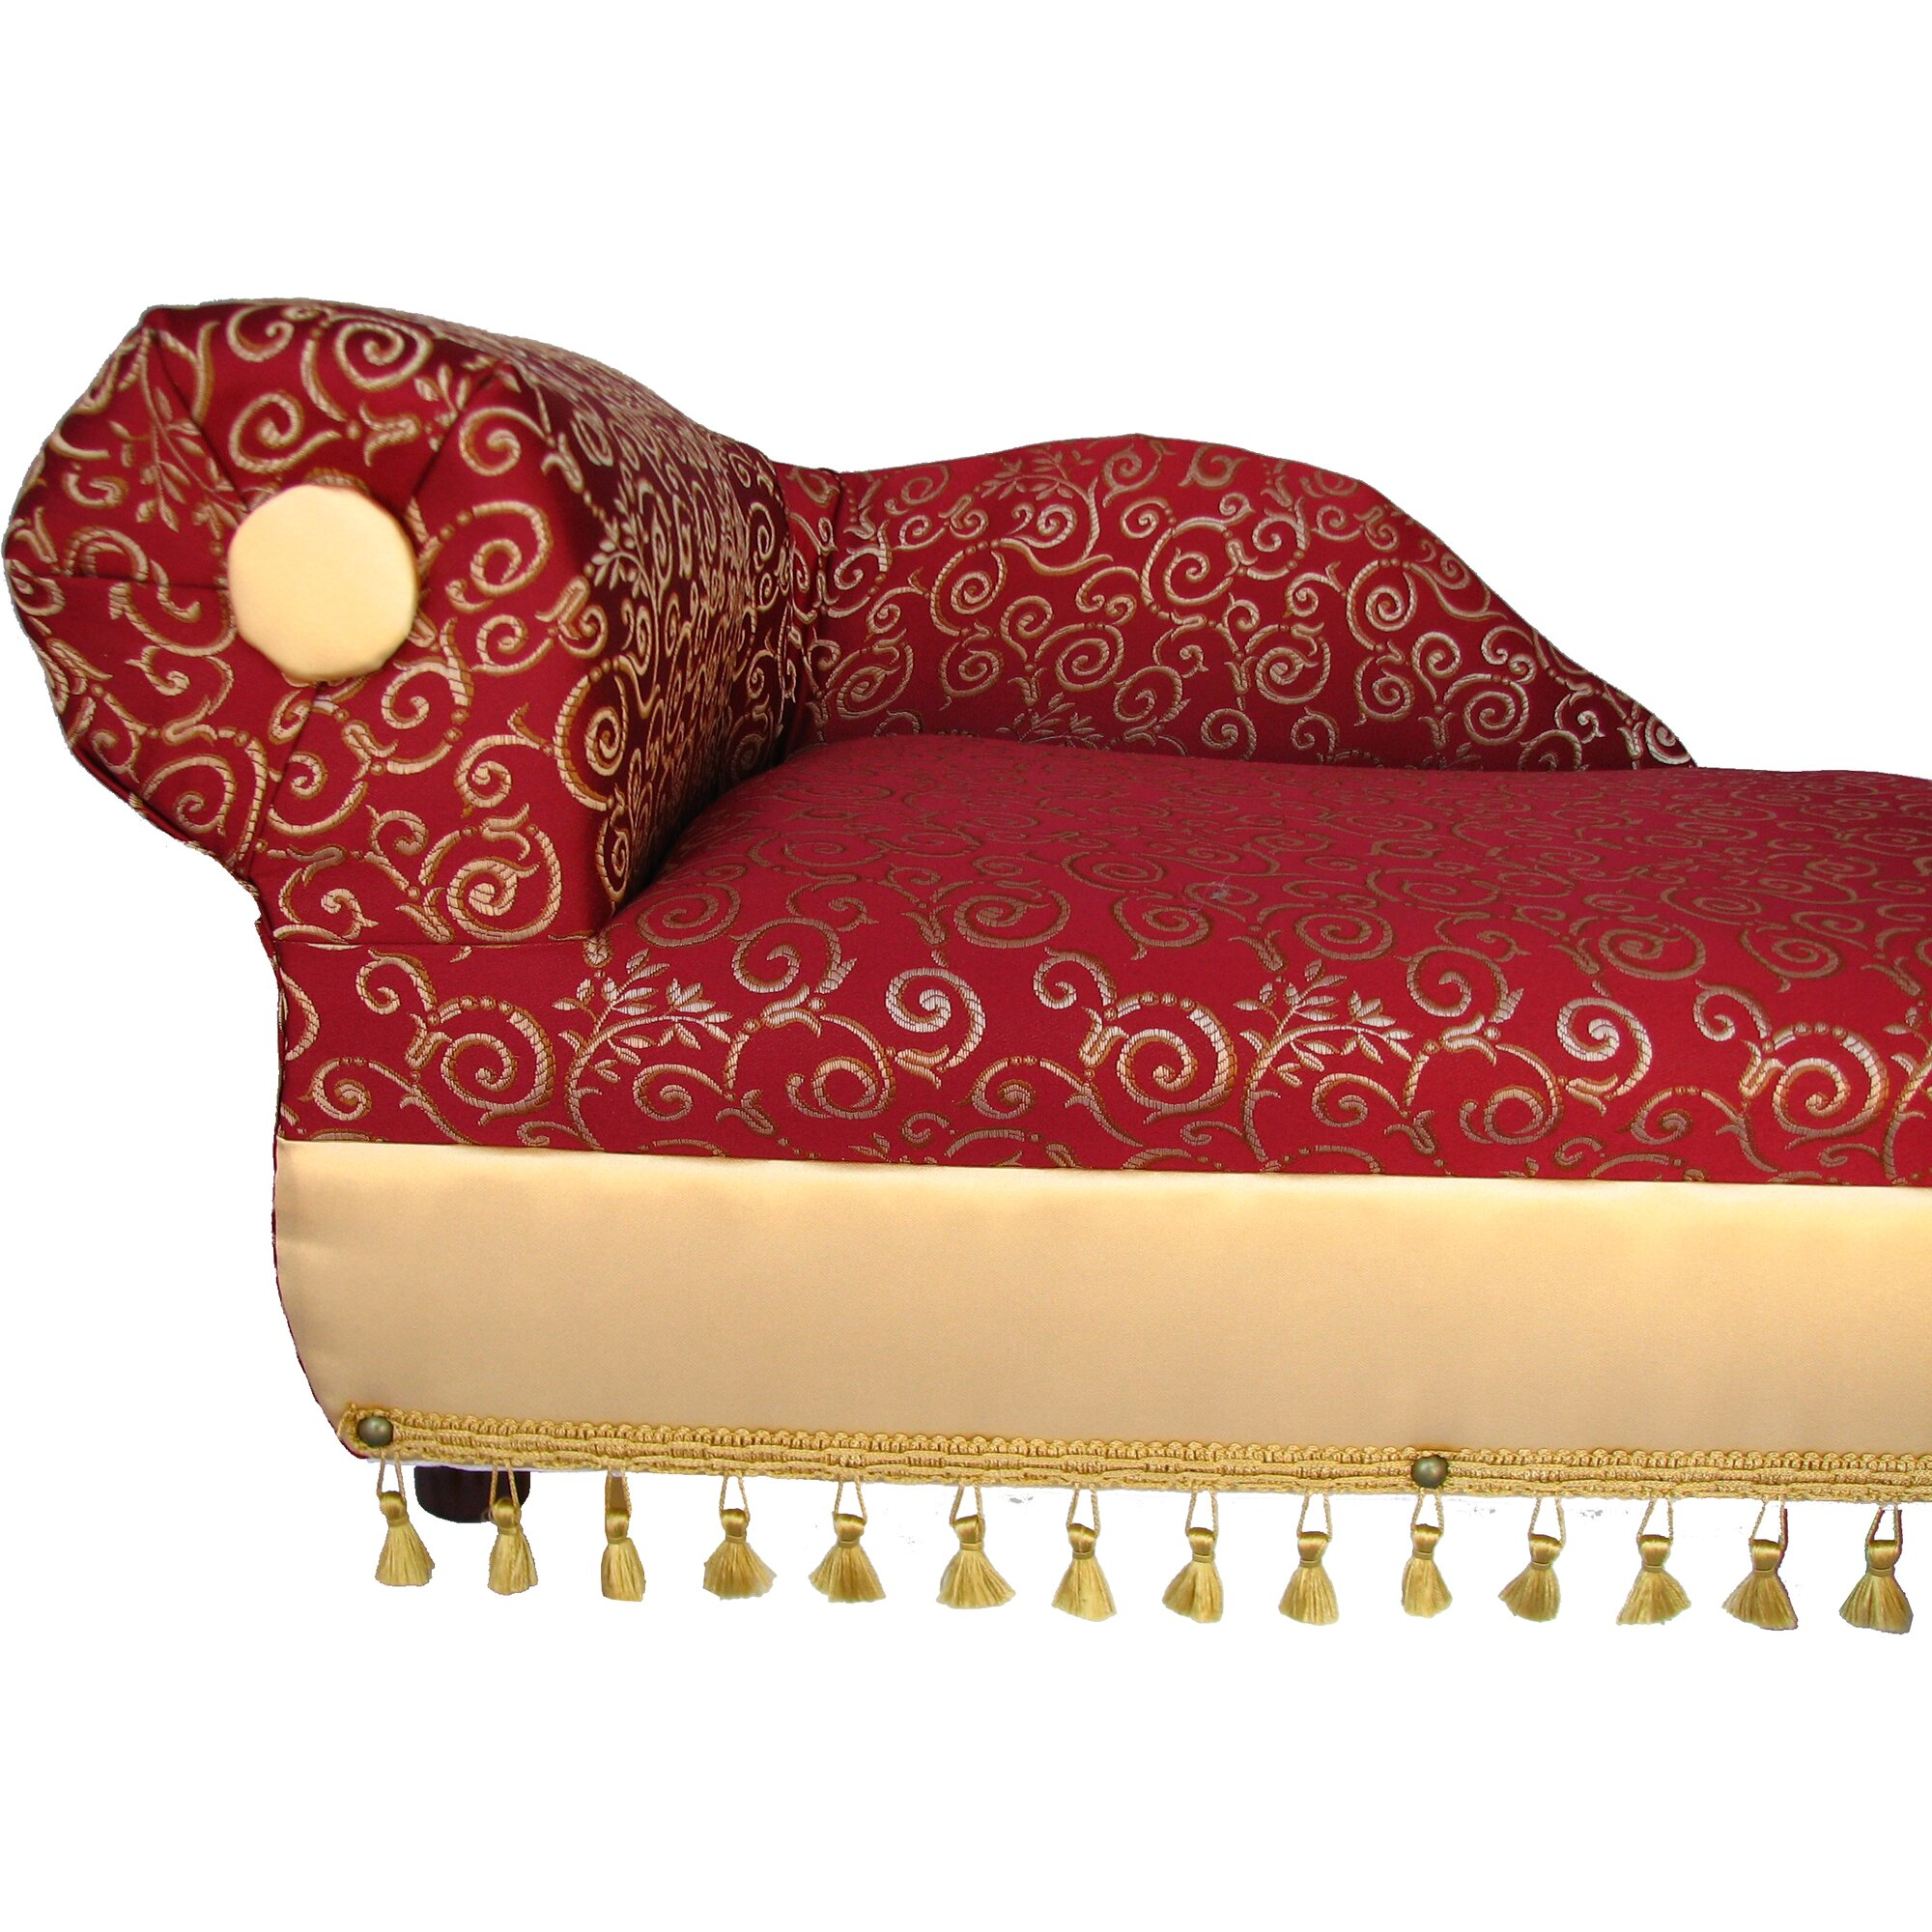 Keet cleopatra dog chaise elegant reviews for Chaise cleopatra